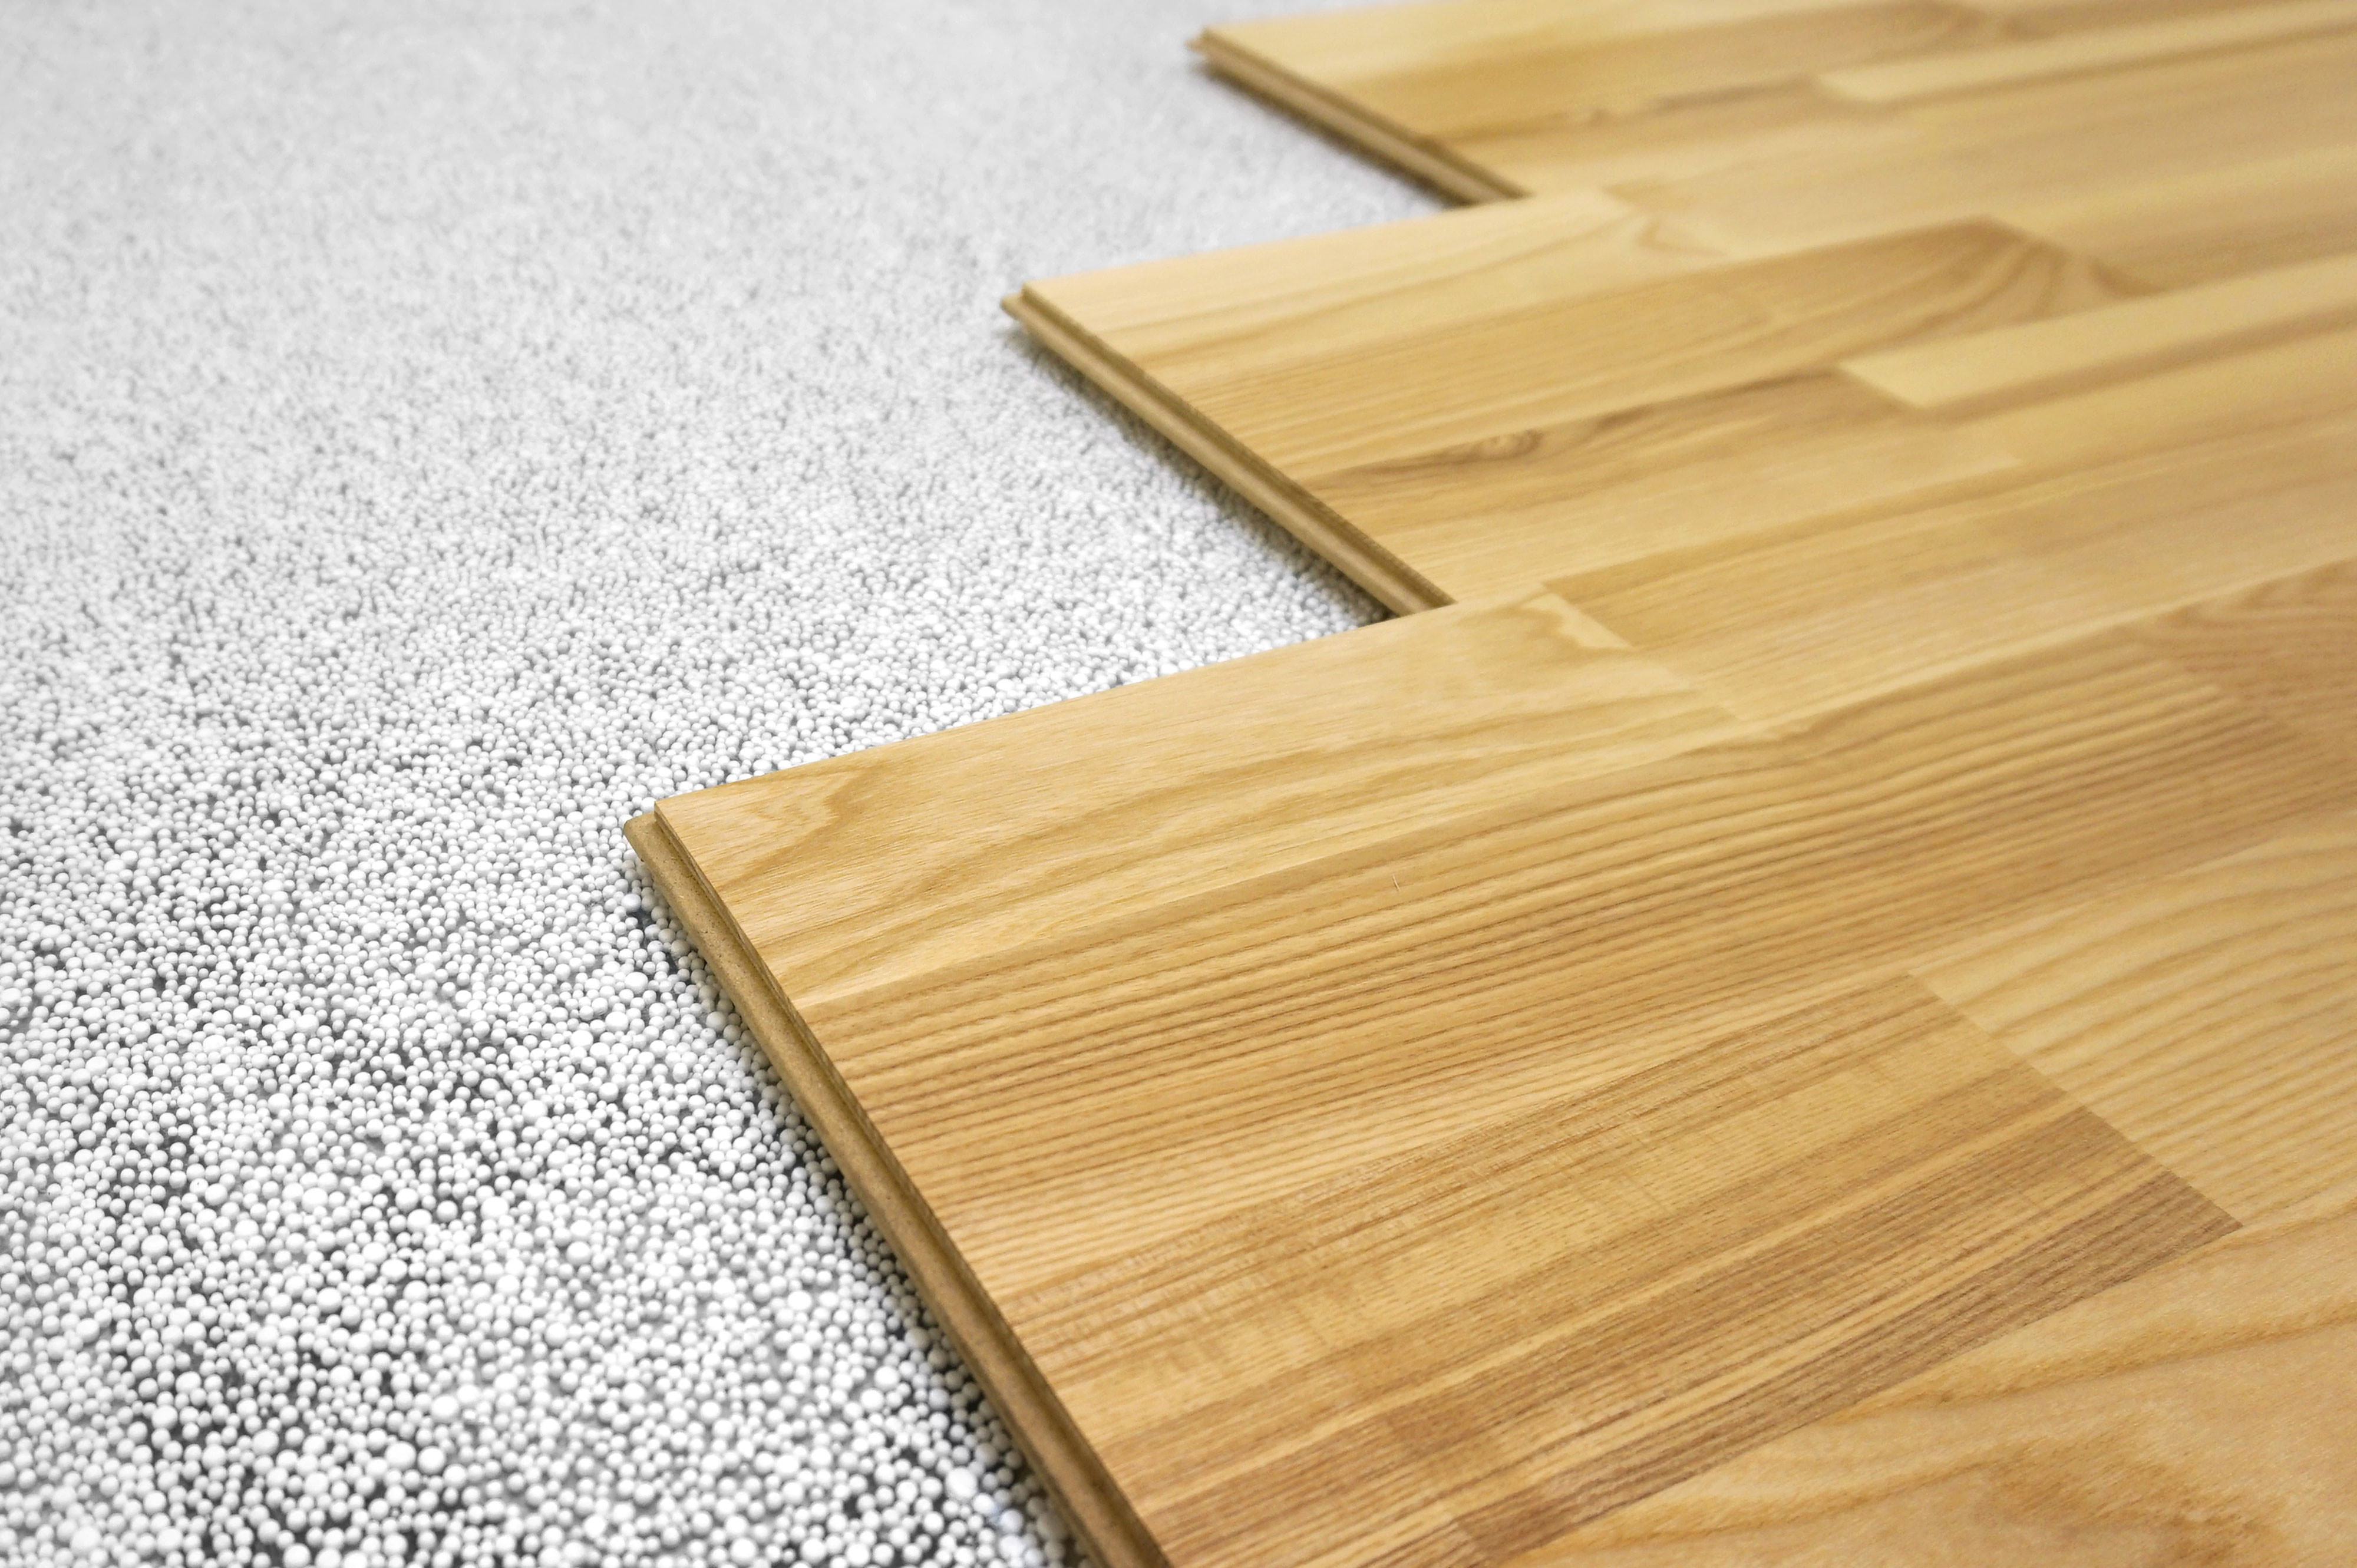 how much does hardwood flooring cost per square foot of what does it cost to install laminate flooring angies list within wood lam